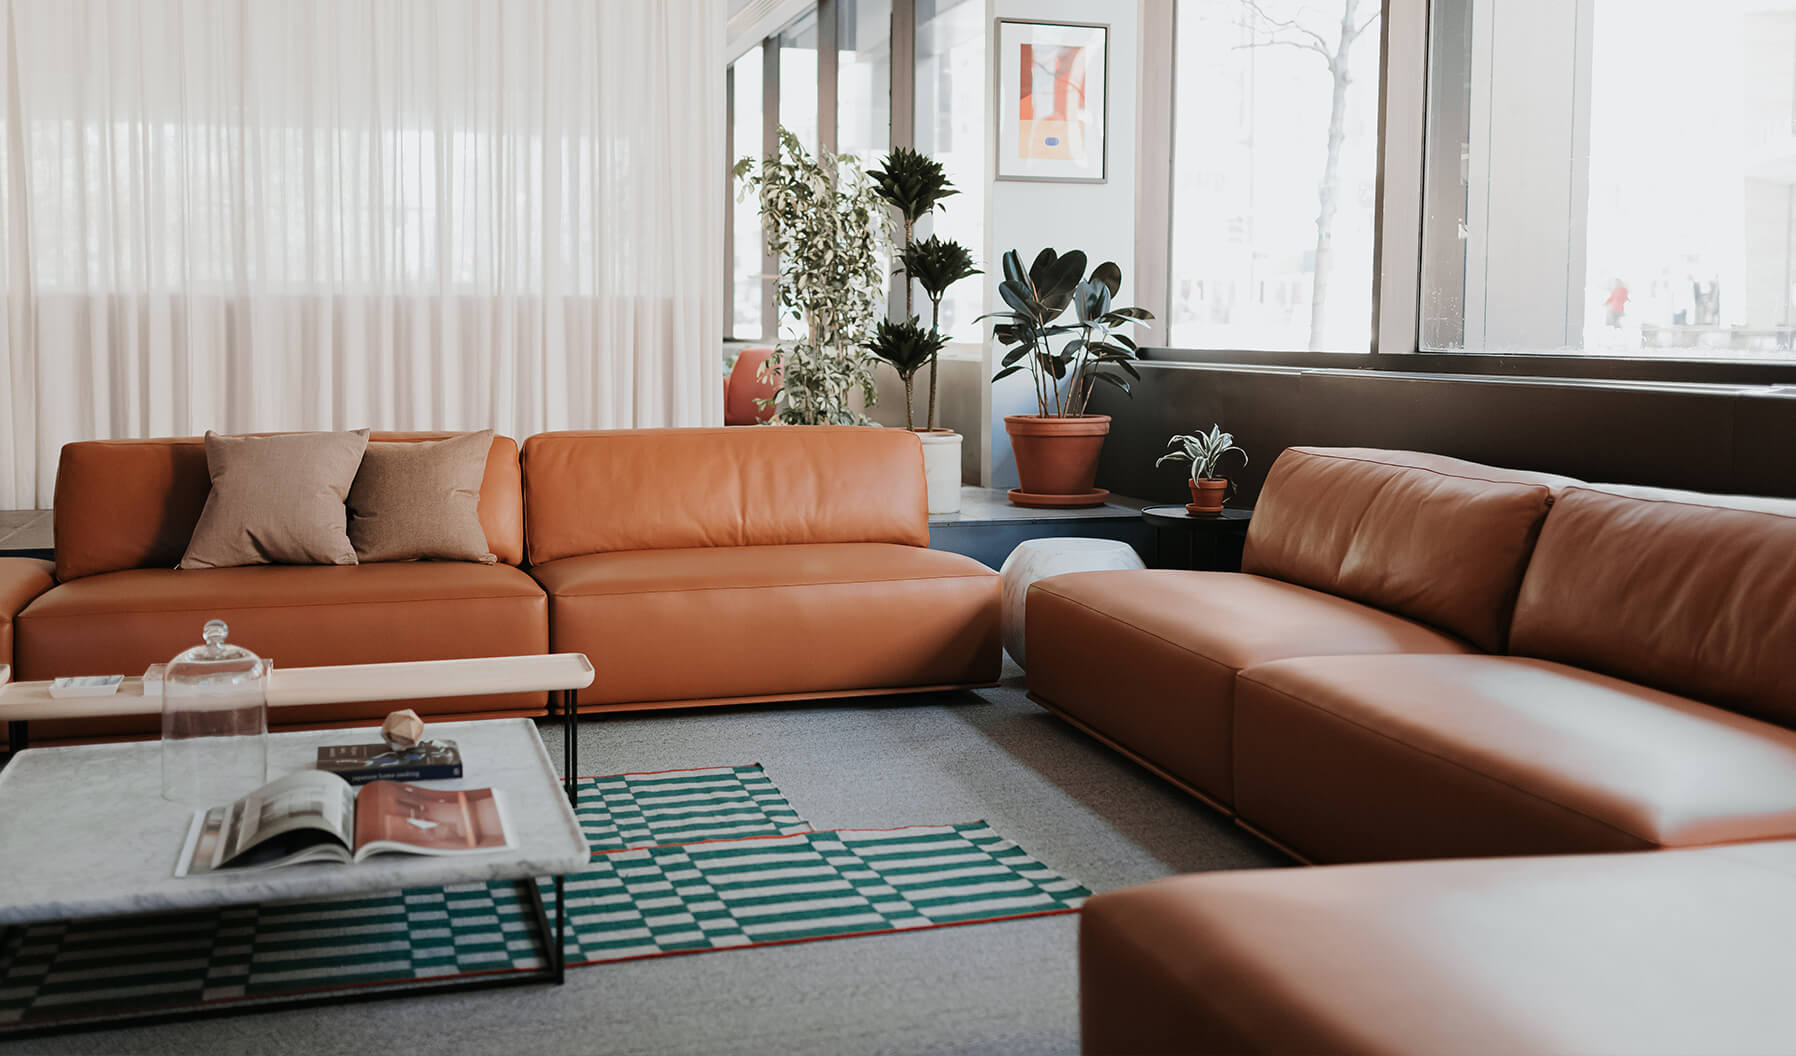 This lounge creates a Social Space that provides comfortable seating to